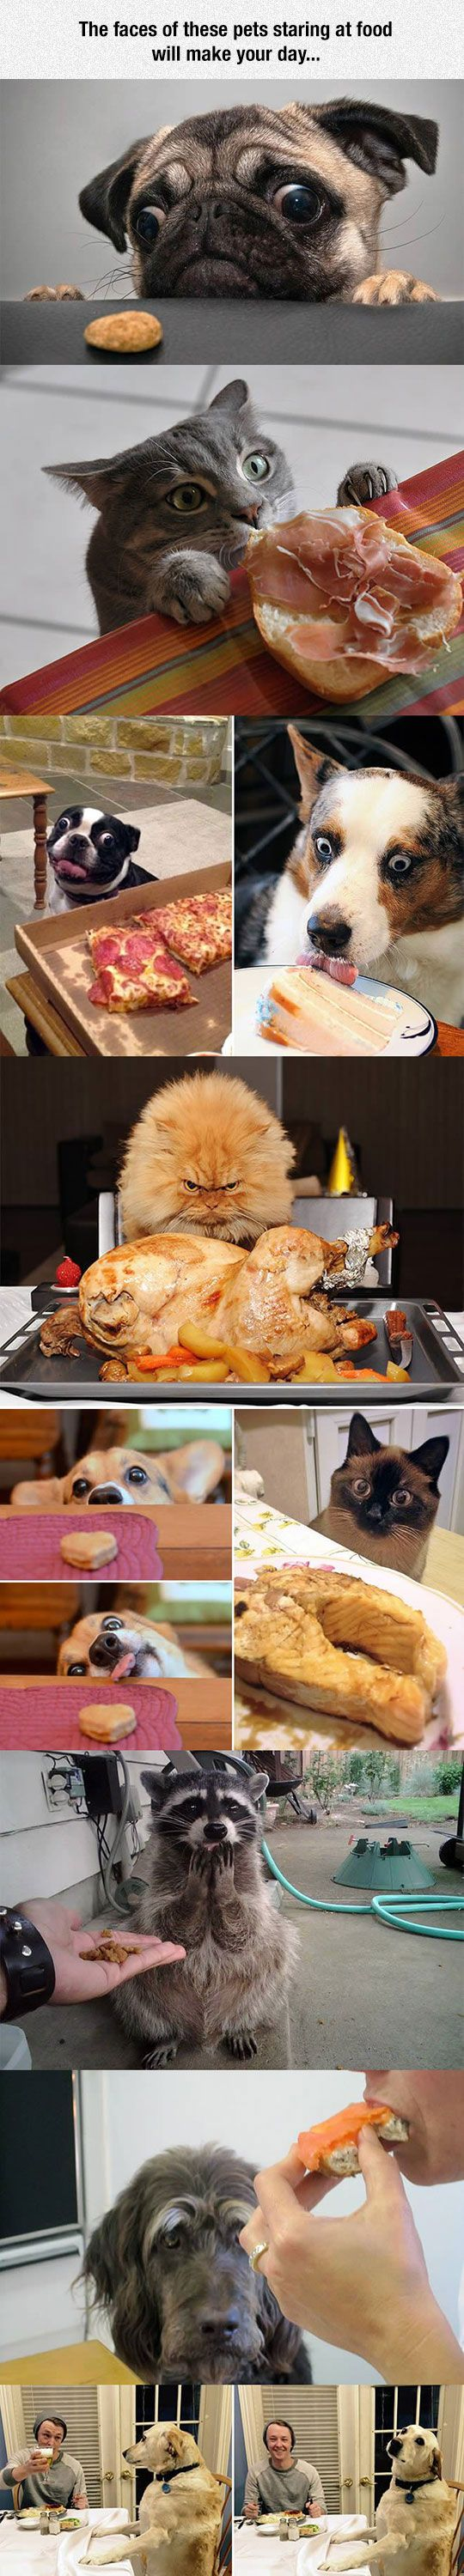 All this talk of special food for #Dogs and #Cats has our eyes boggling... What about you?